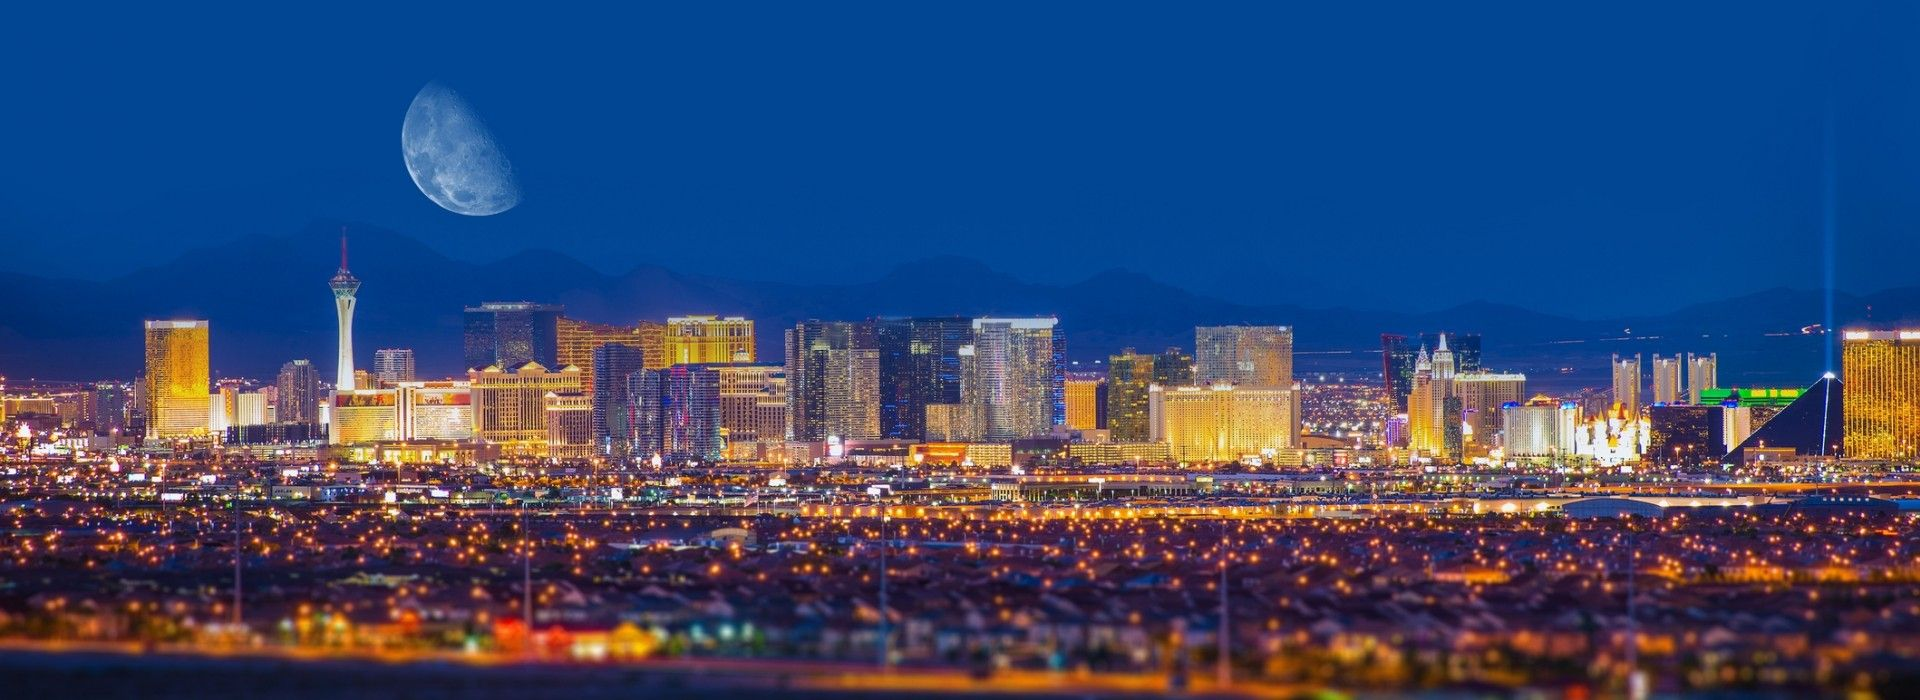 Travelling Las Vegas - Tours and Trips in Las Vegas